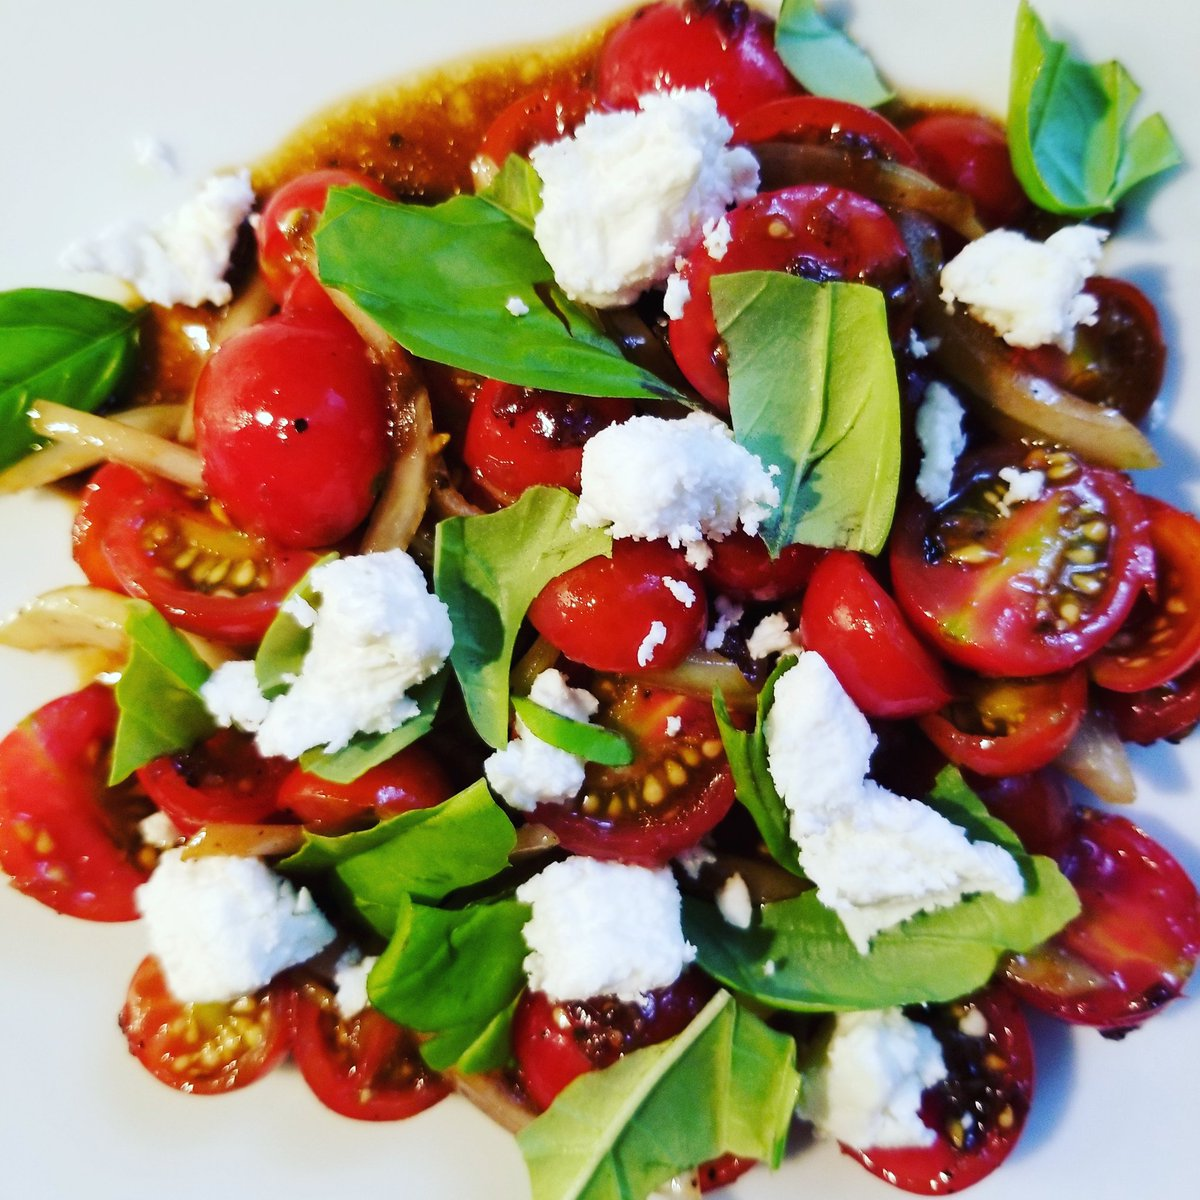 Balsamic Cherry #Tomato #Salad #recipeoftheday #homecook #healthyeating #foodie  https://t.co/XHlNDpbtBN https://t.co/wLqdJGDwE1